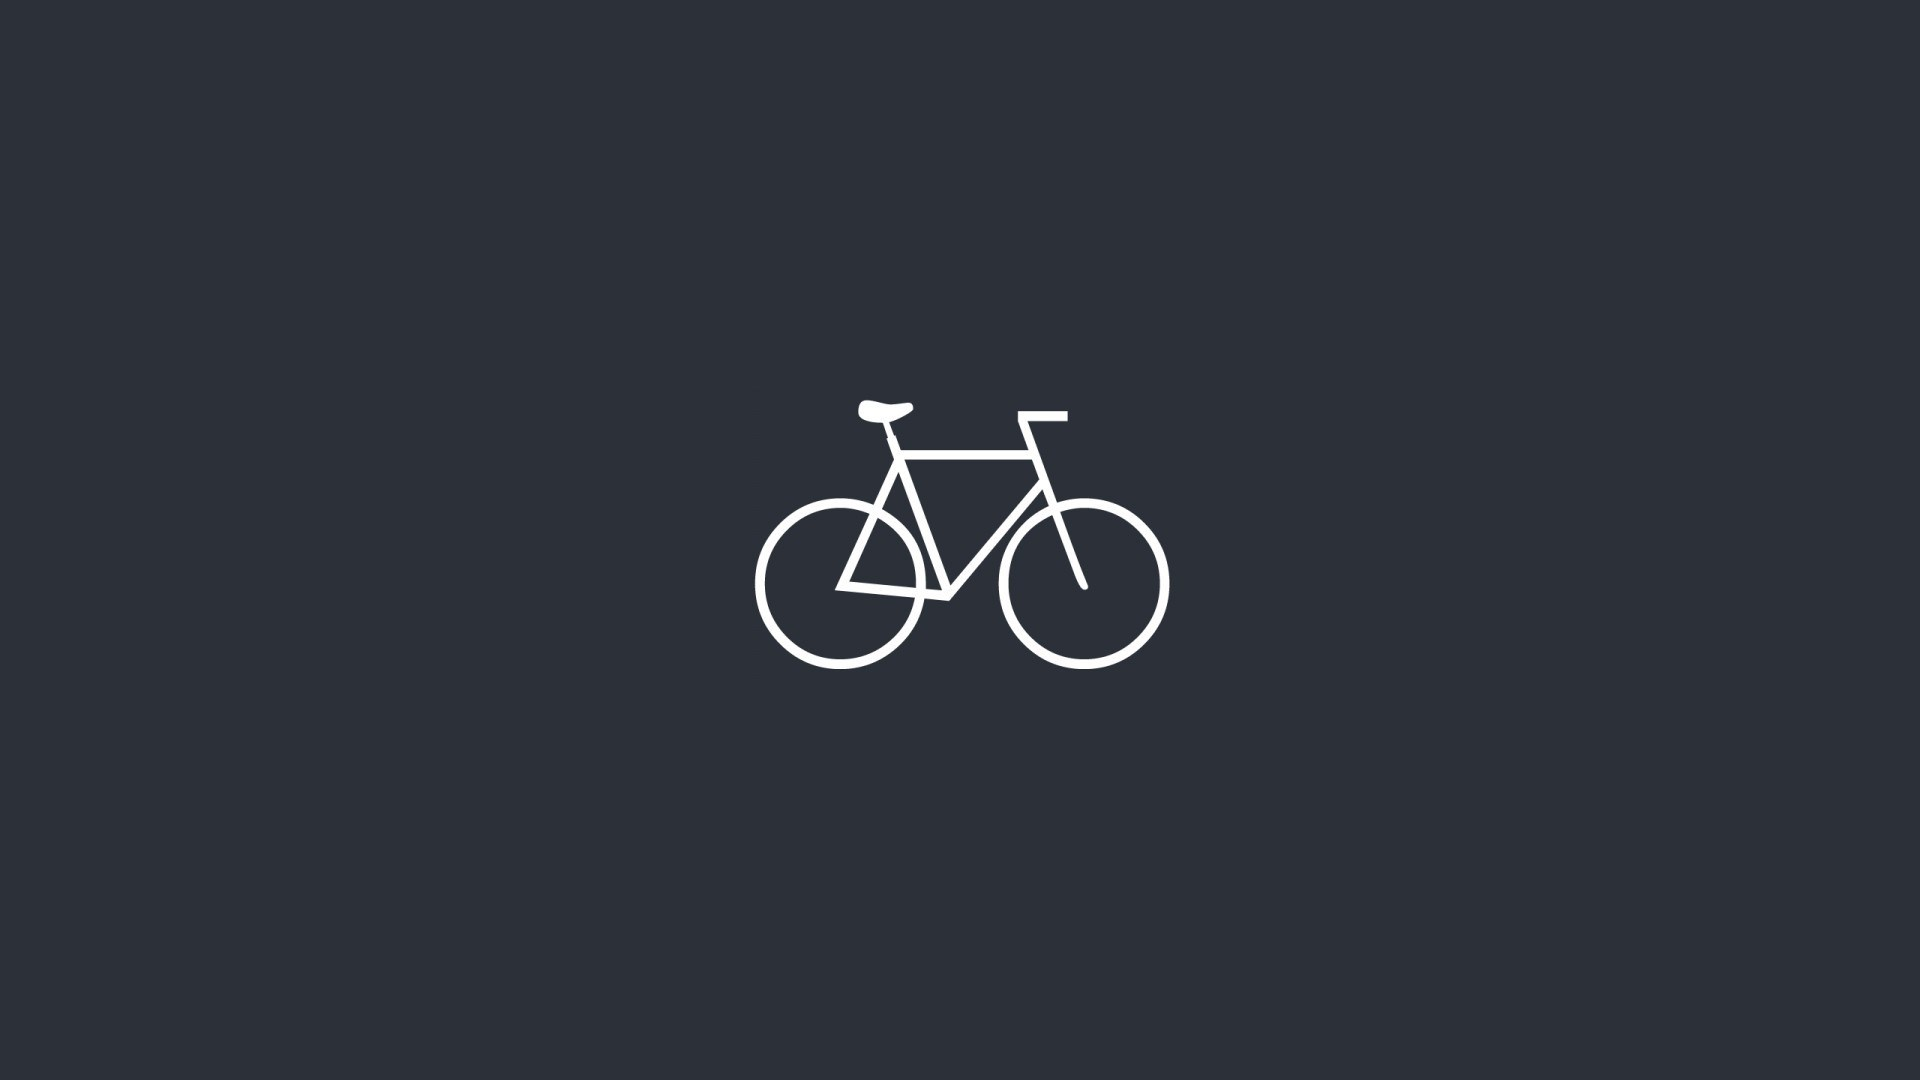 simple bike art 1080p - photo #10